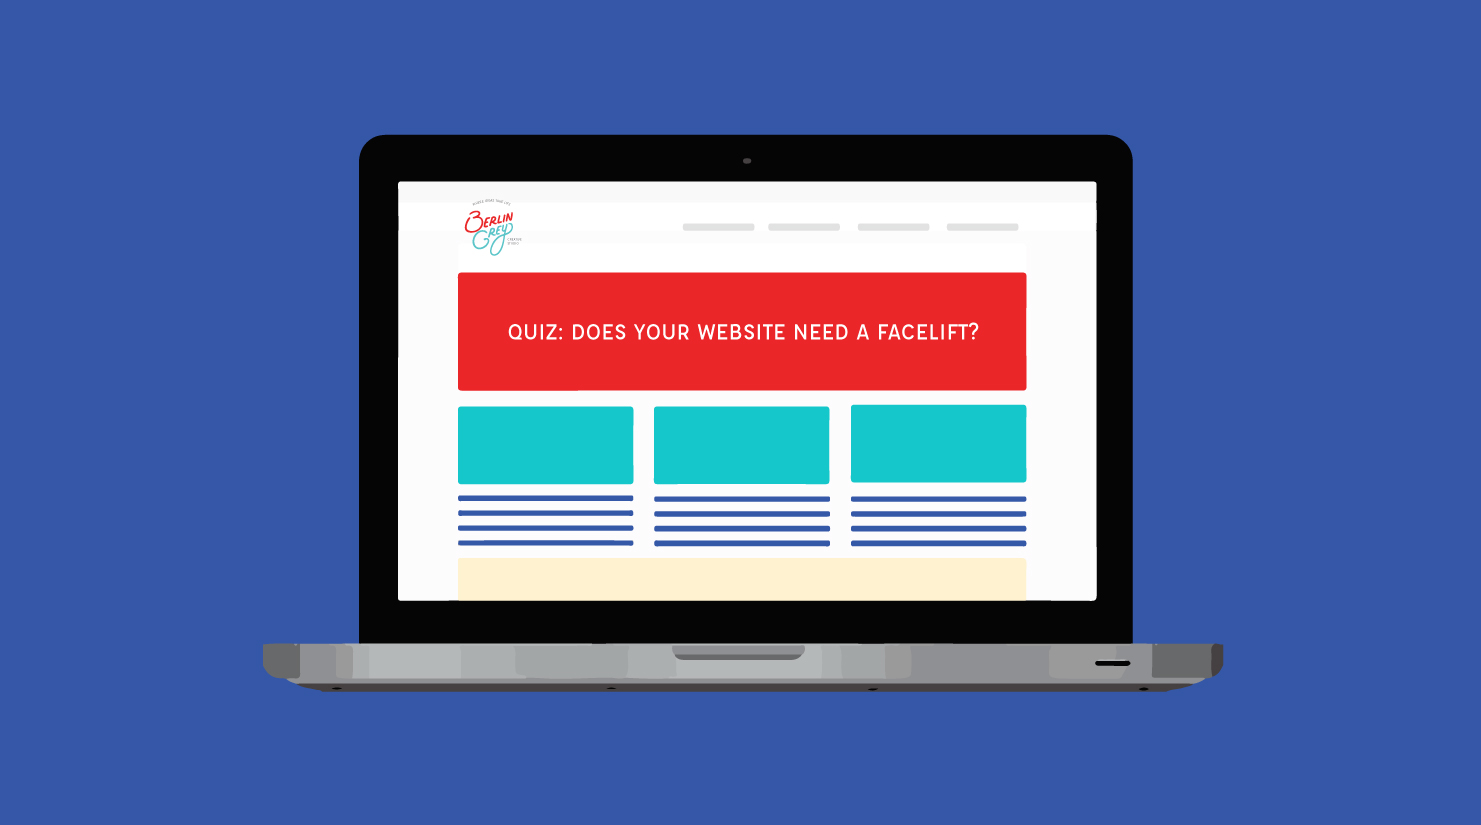 QUIZ: Does Your Website Need A Facelift?